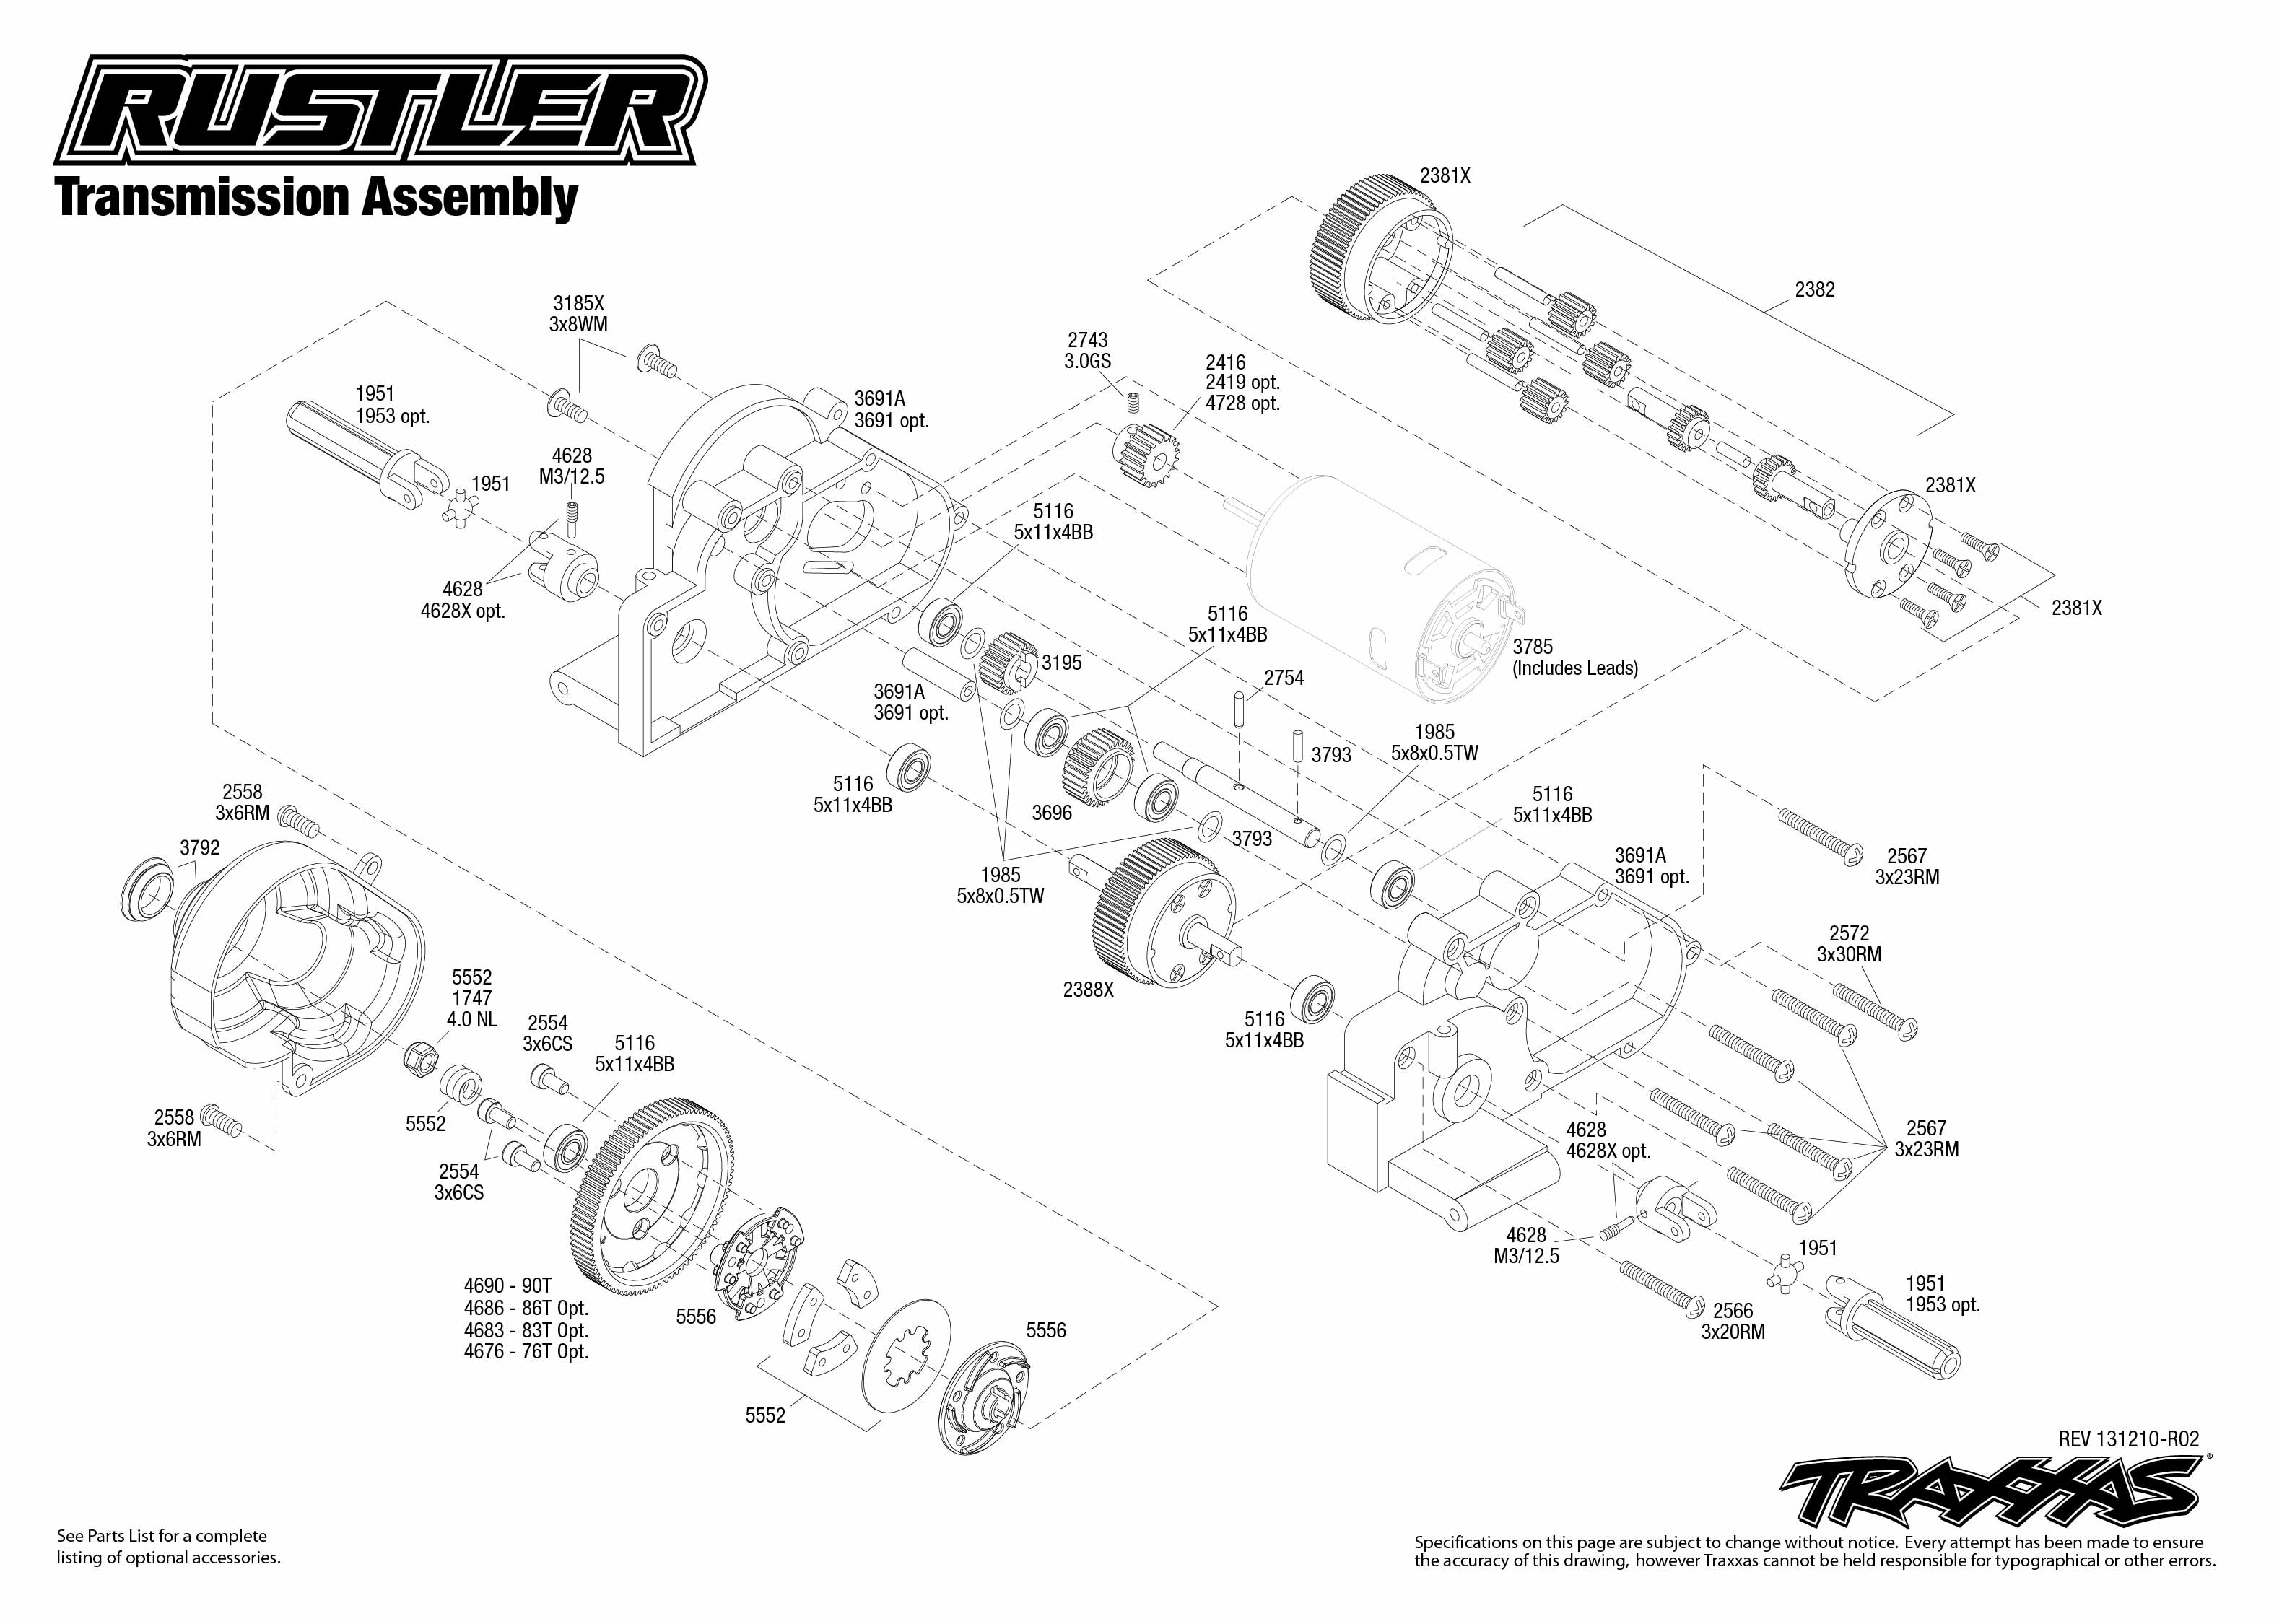 Incredible Rustler 37054 Transmission Assembly Traxxas Wiring Database Ittabxeroyuccorg